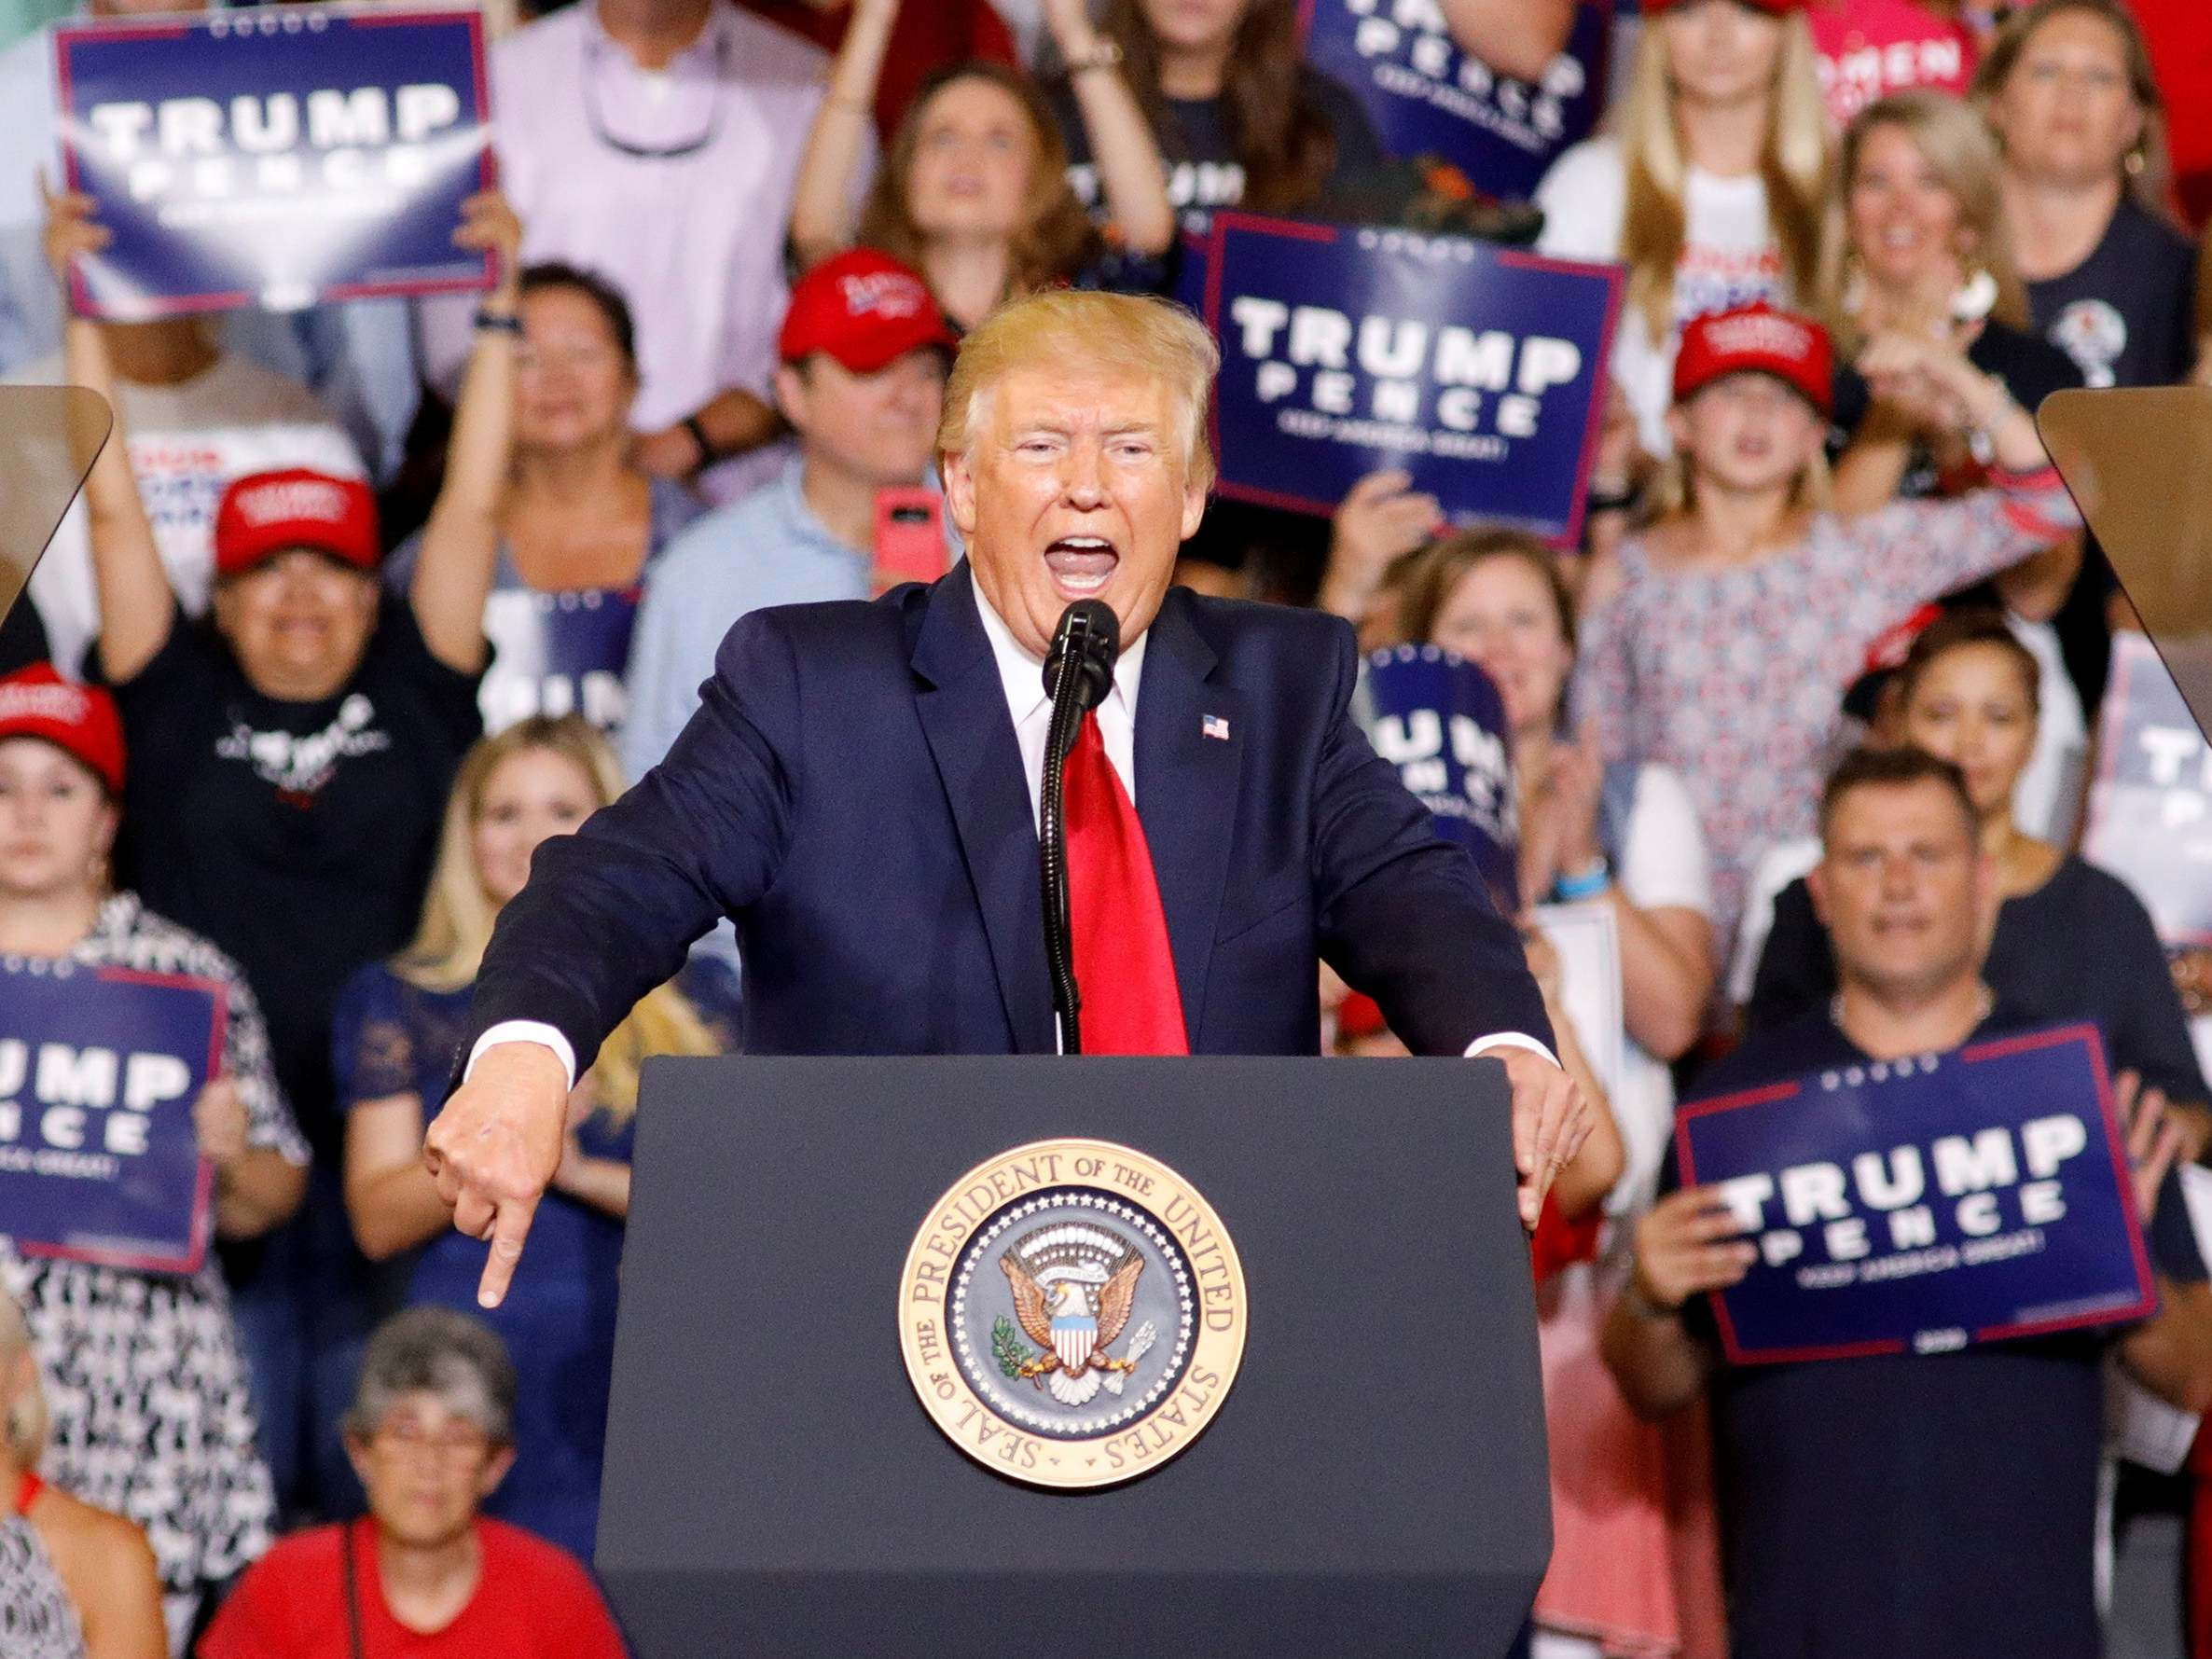 Don't be fooled, the chilling 'send her back' chants at Trump's rally were no isolated incident